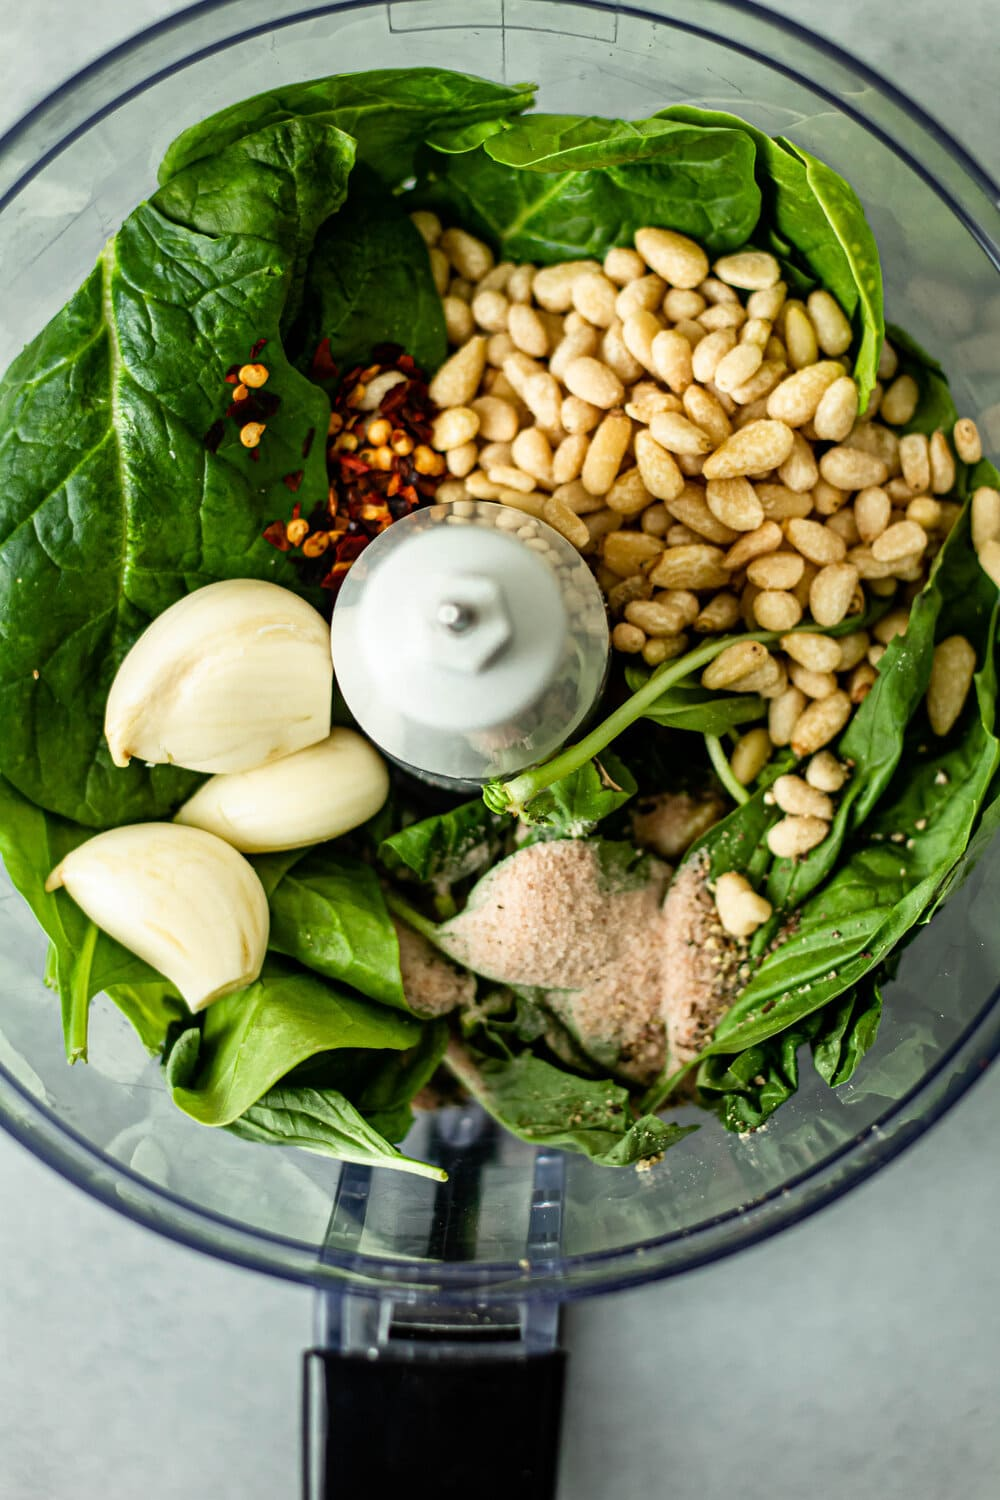 spinach, basil, pine nuts, red pepper flakes, salt and garlic in a food processor